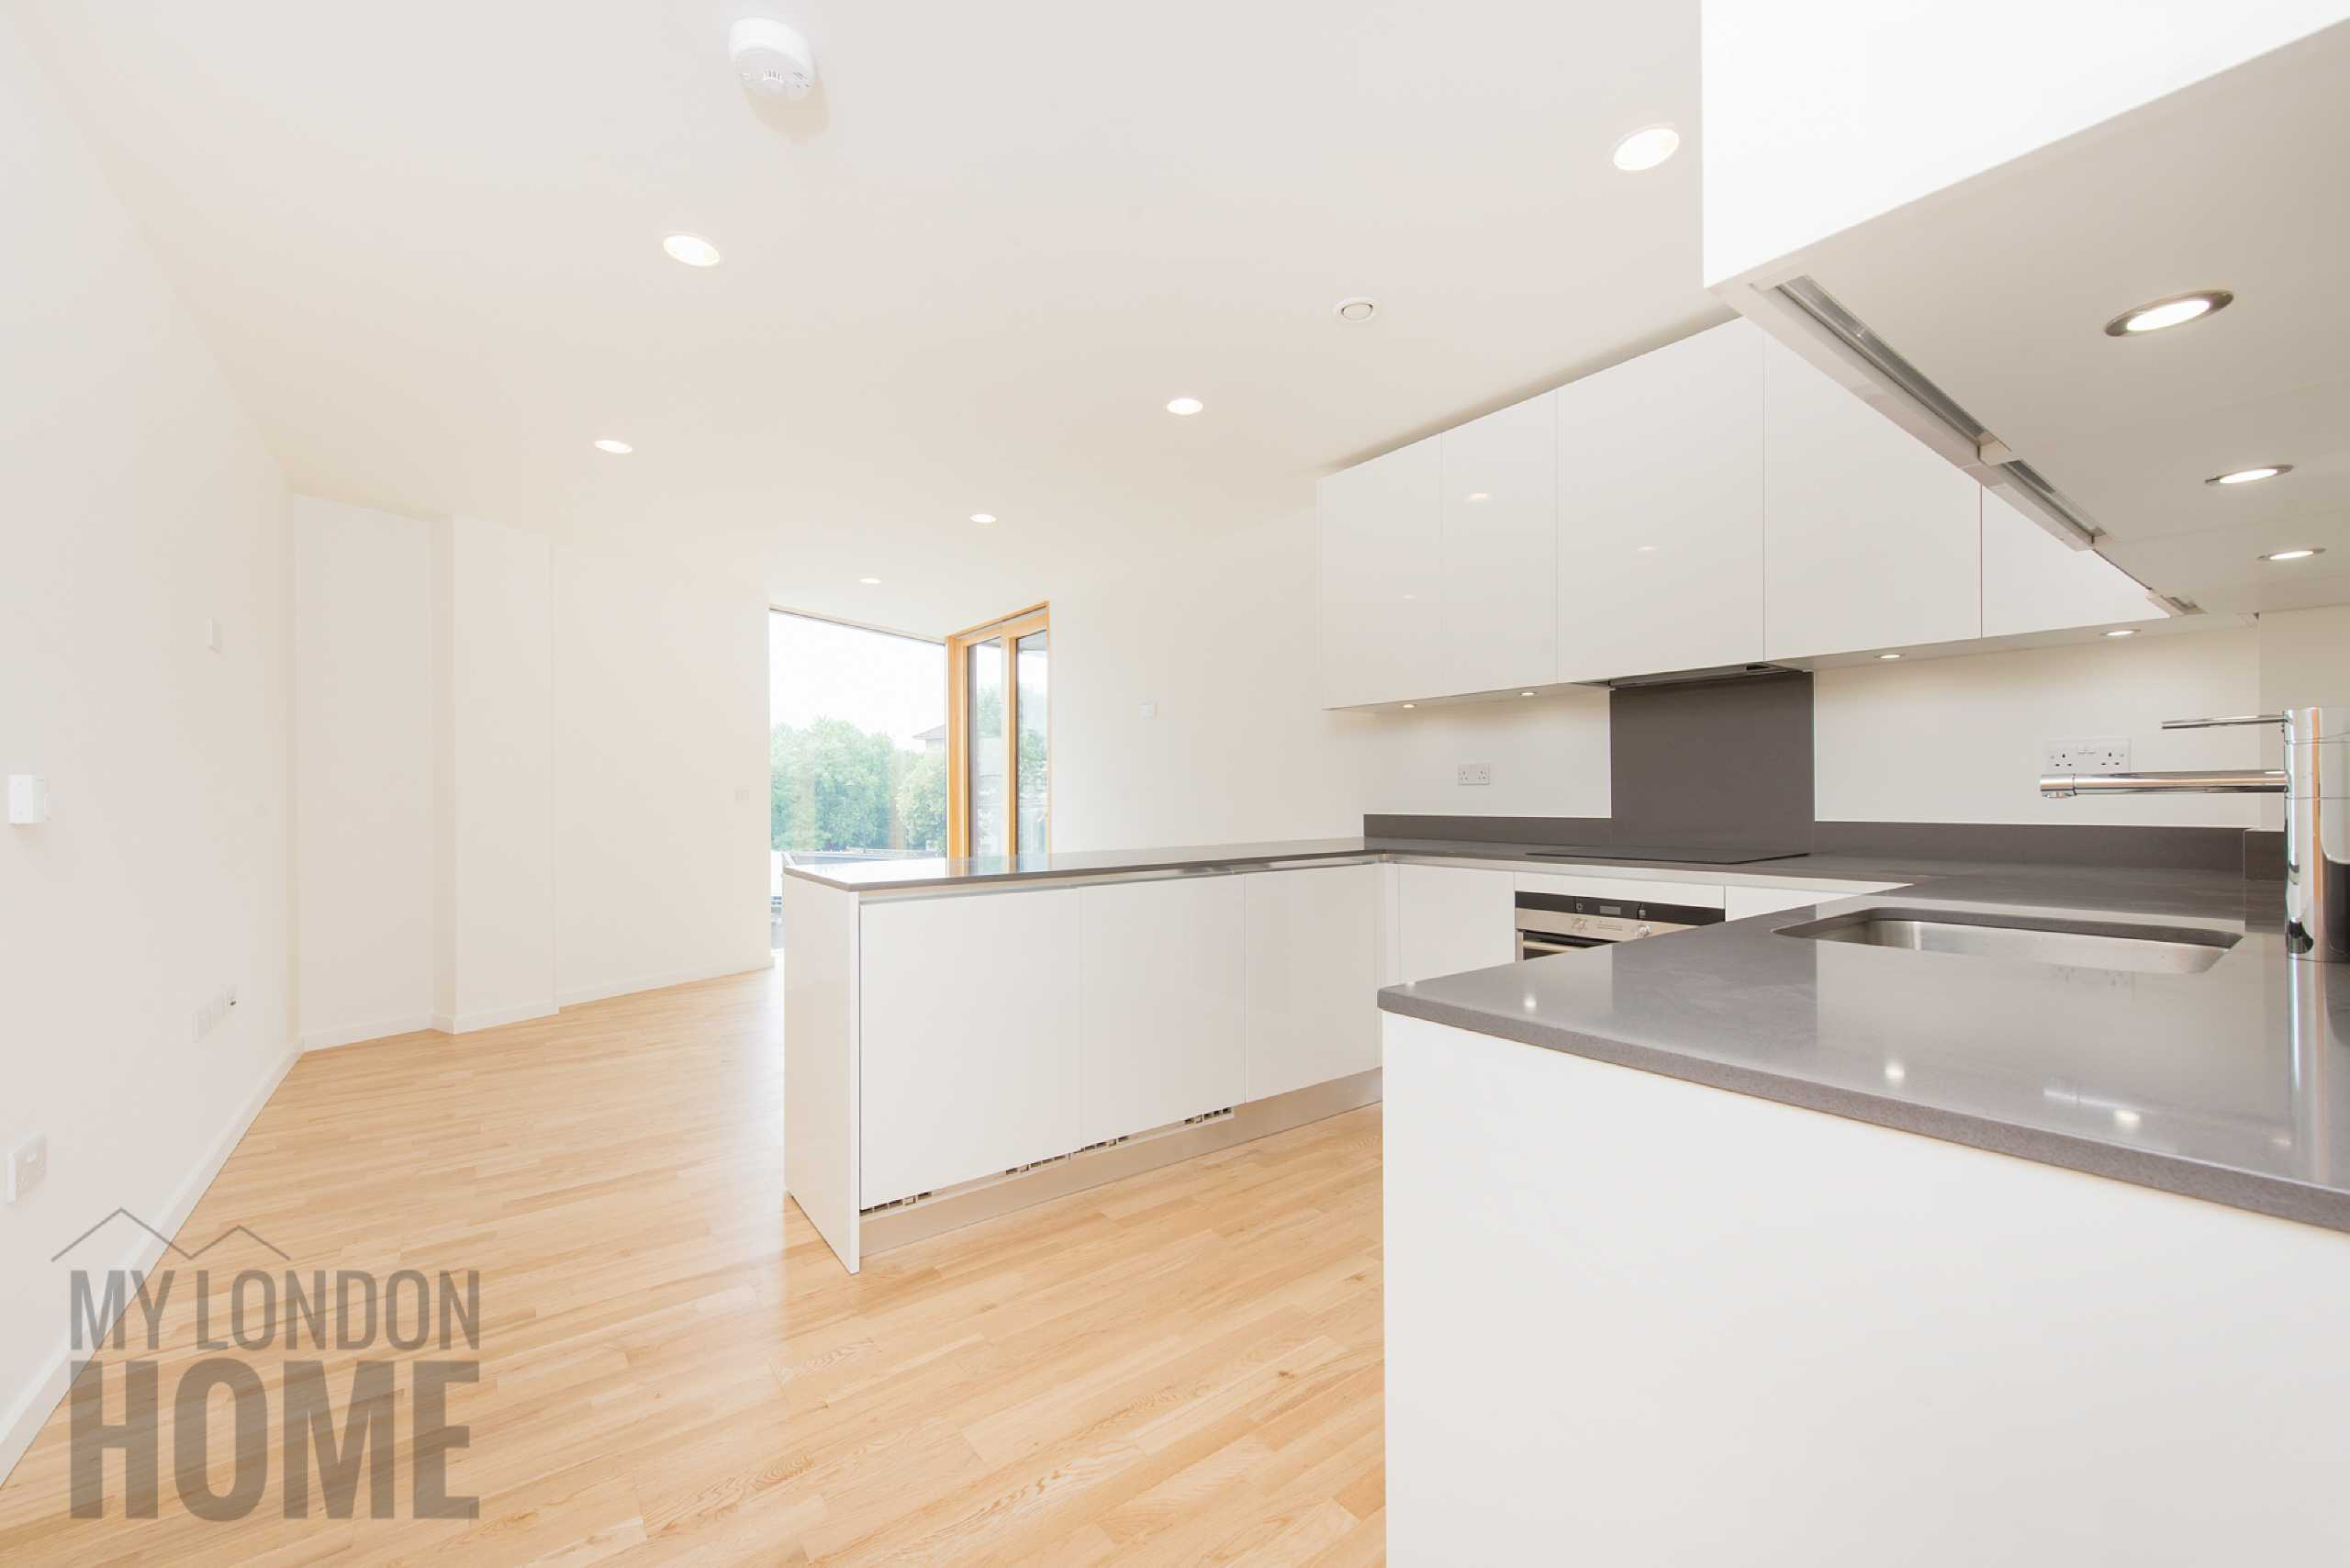 2 Bedrooms Apartment Flat for sale in Solstice Point, Regents Park View, London, NW1